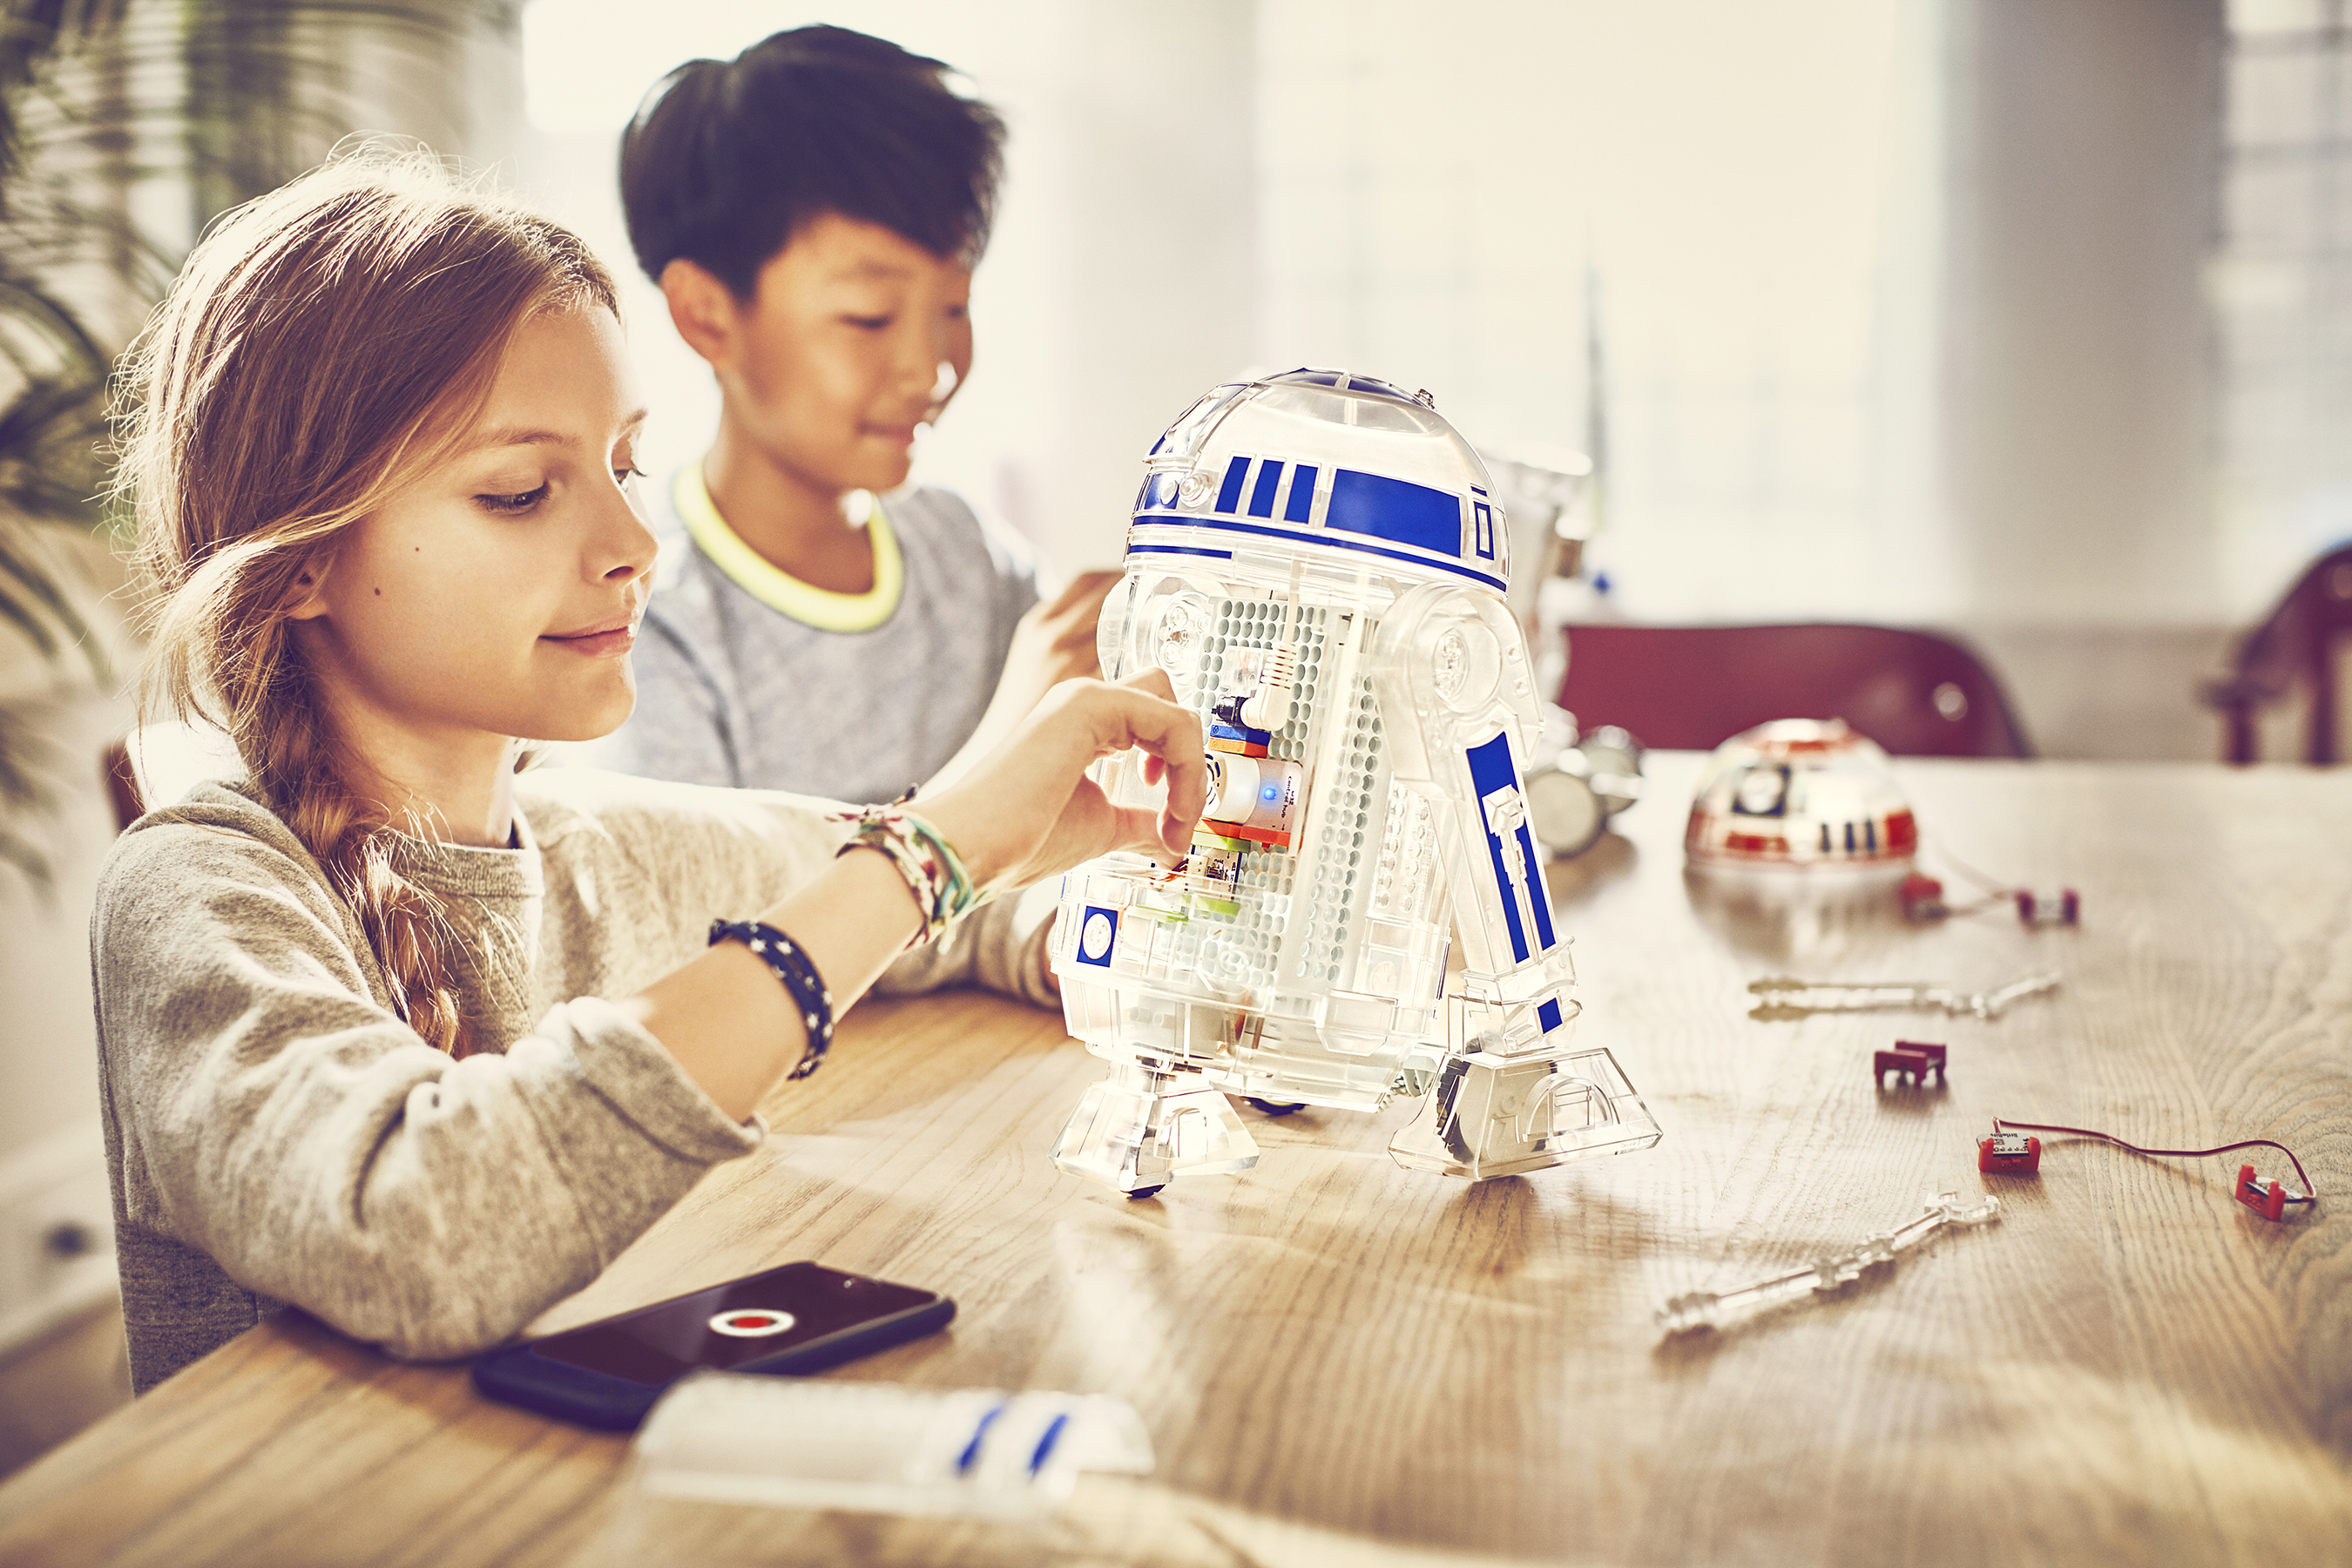 With the littleBits Droid Inventor Kit, kids can create their own custom Droid™ and bring it to life for the first time ever!